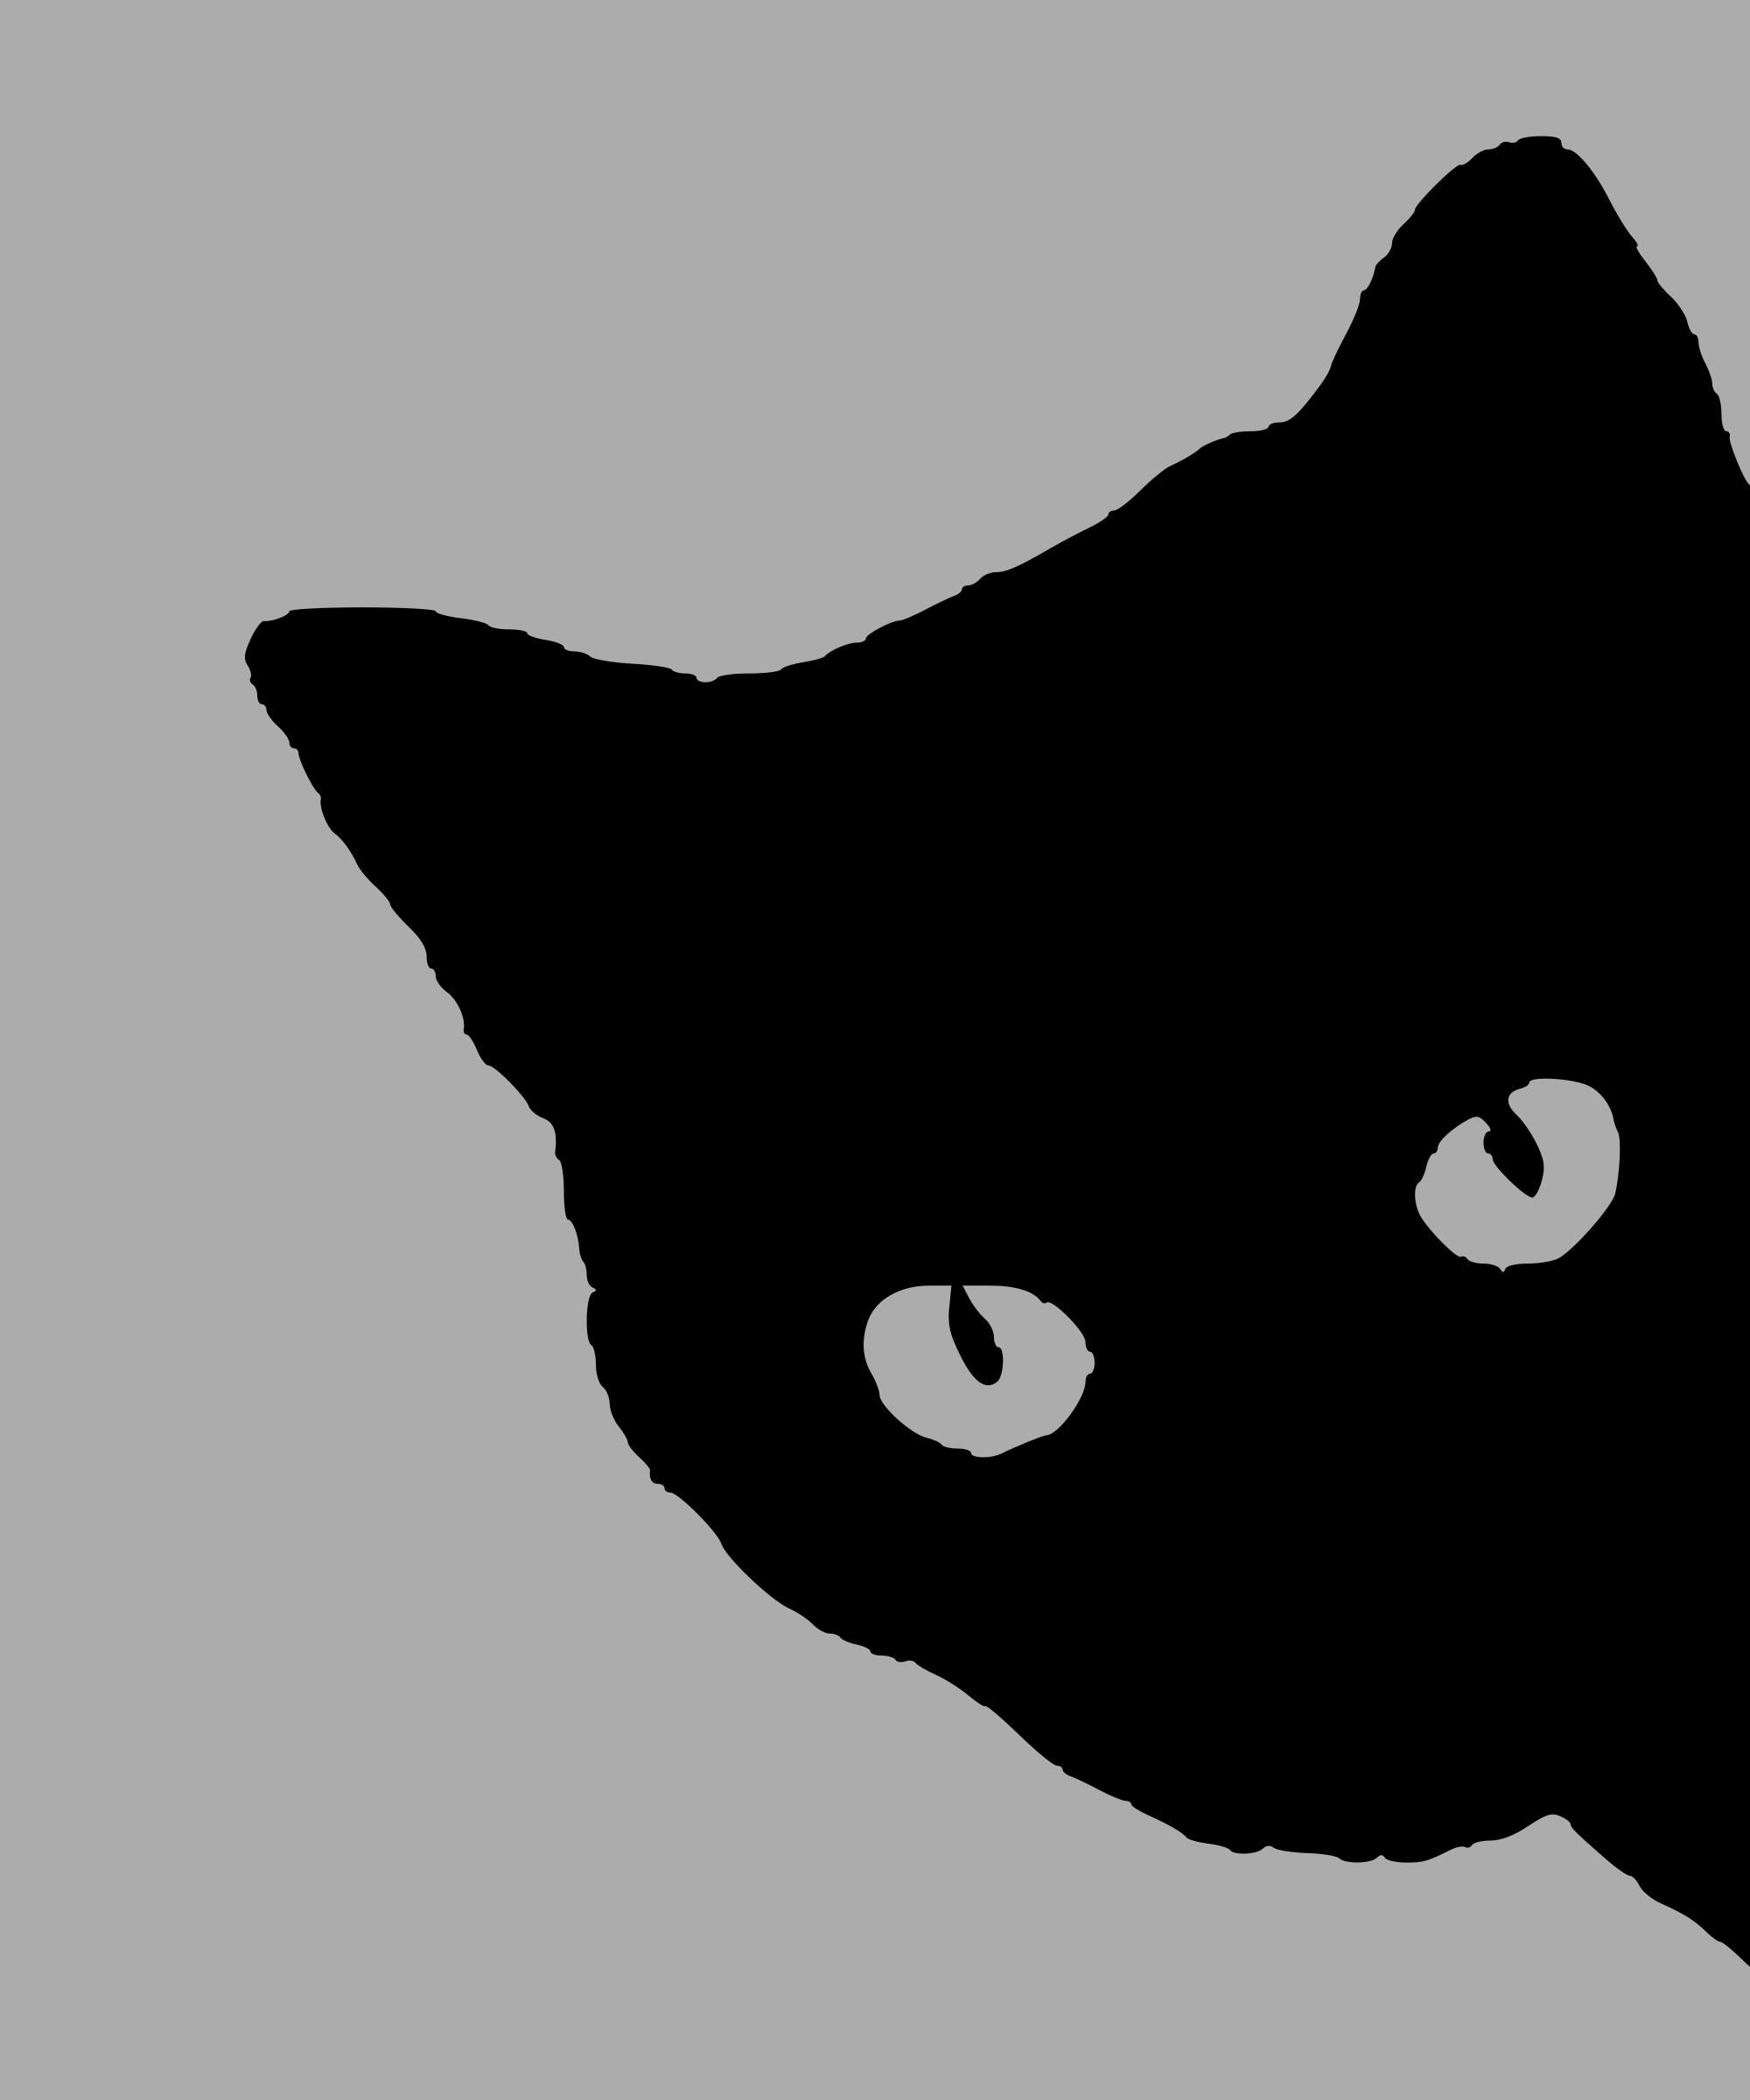 Cat Silhouette 01 Png Icons Black Cat Silhouette Animal Silhouette Cat Silhouette